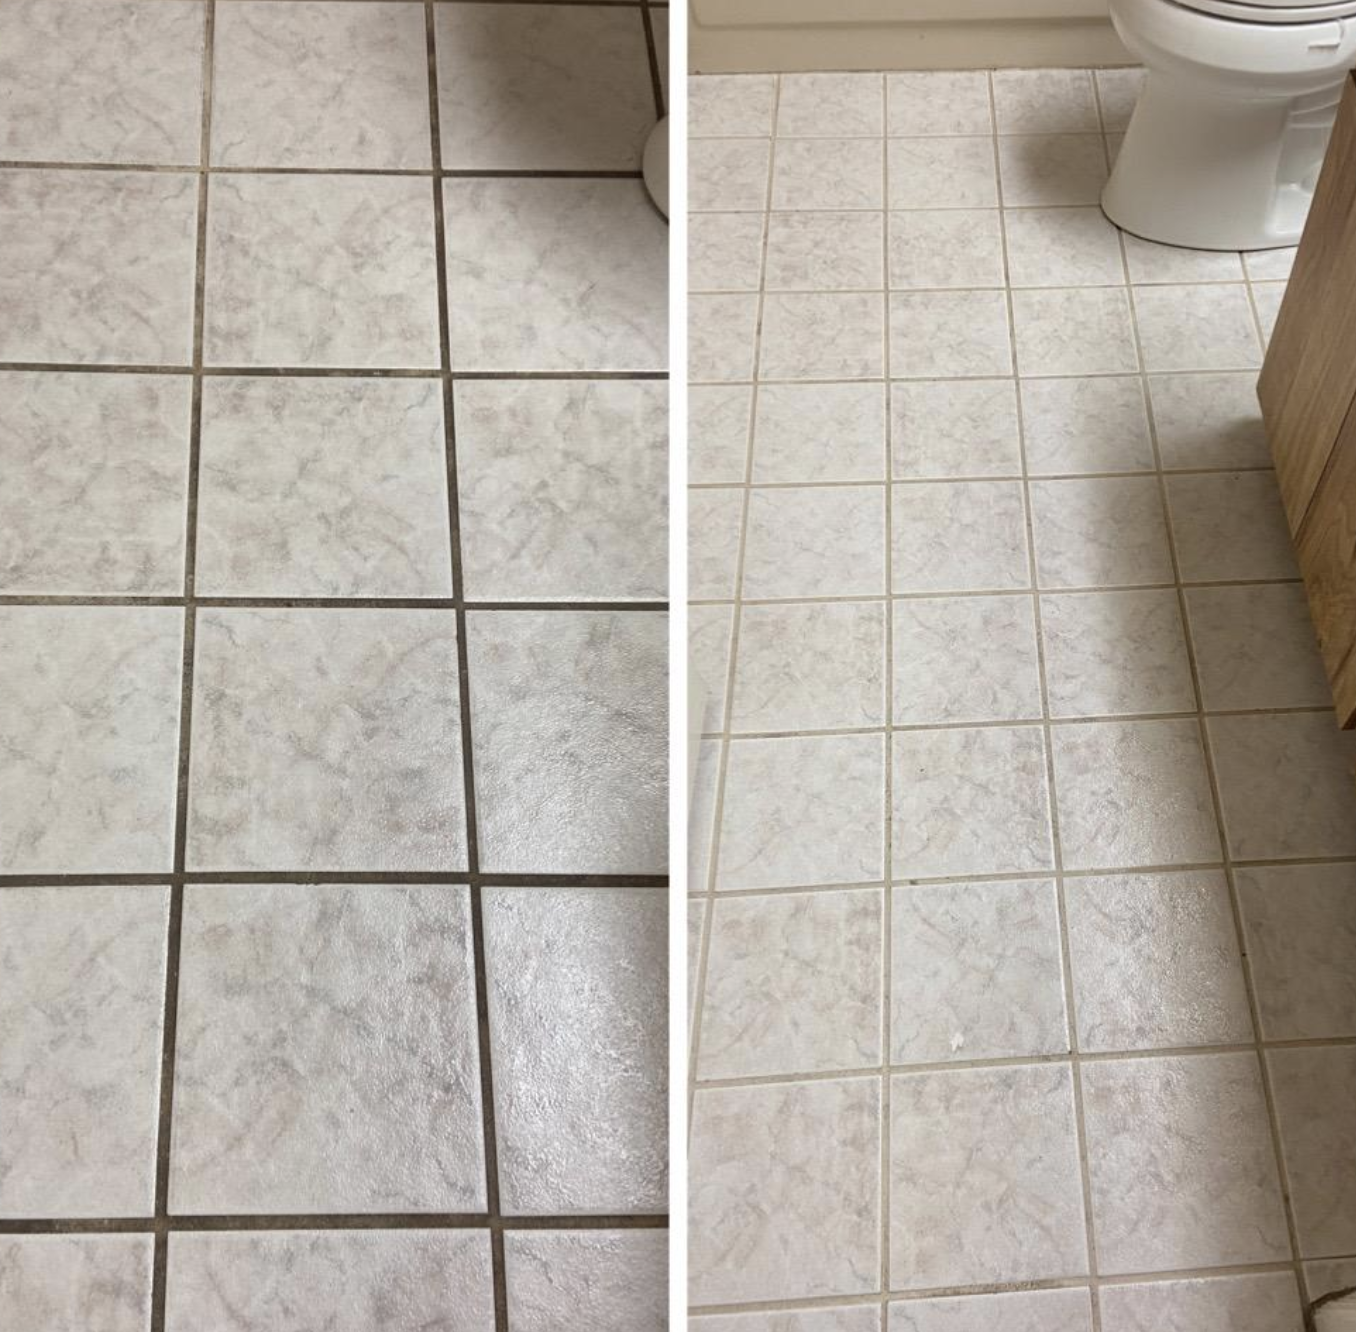 Reviewer's before and after showing cleaner, whiter grout after using the cleaner